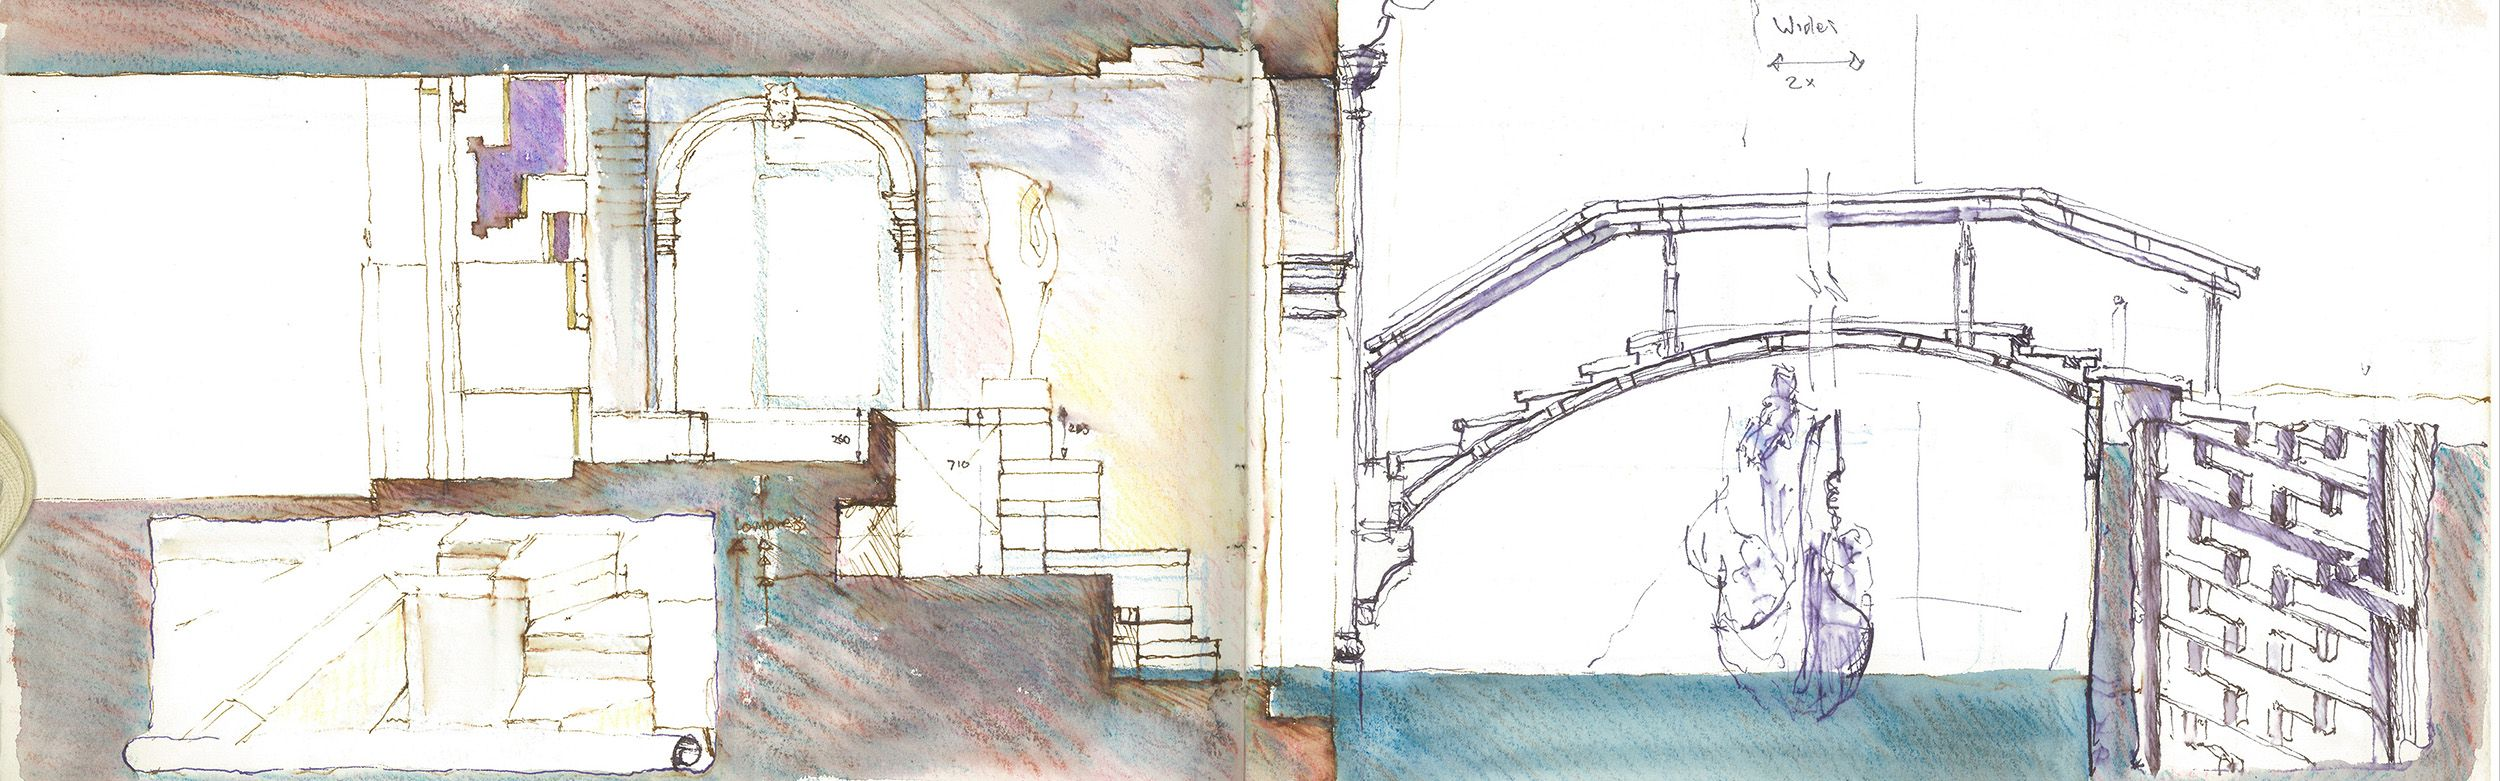 Sketch section through canal entrance of Querini Stampalia by Carlo Scarpa fc2e1a89265